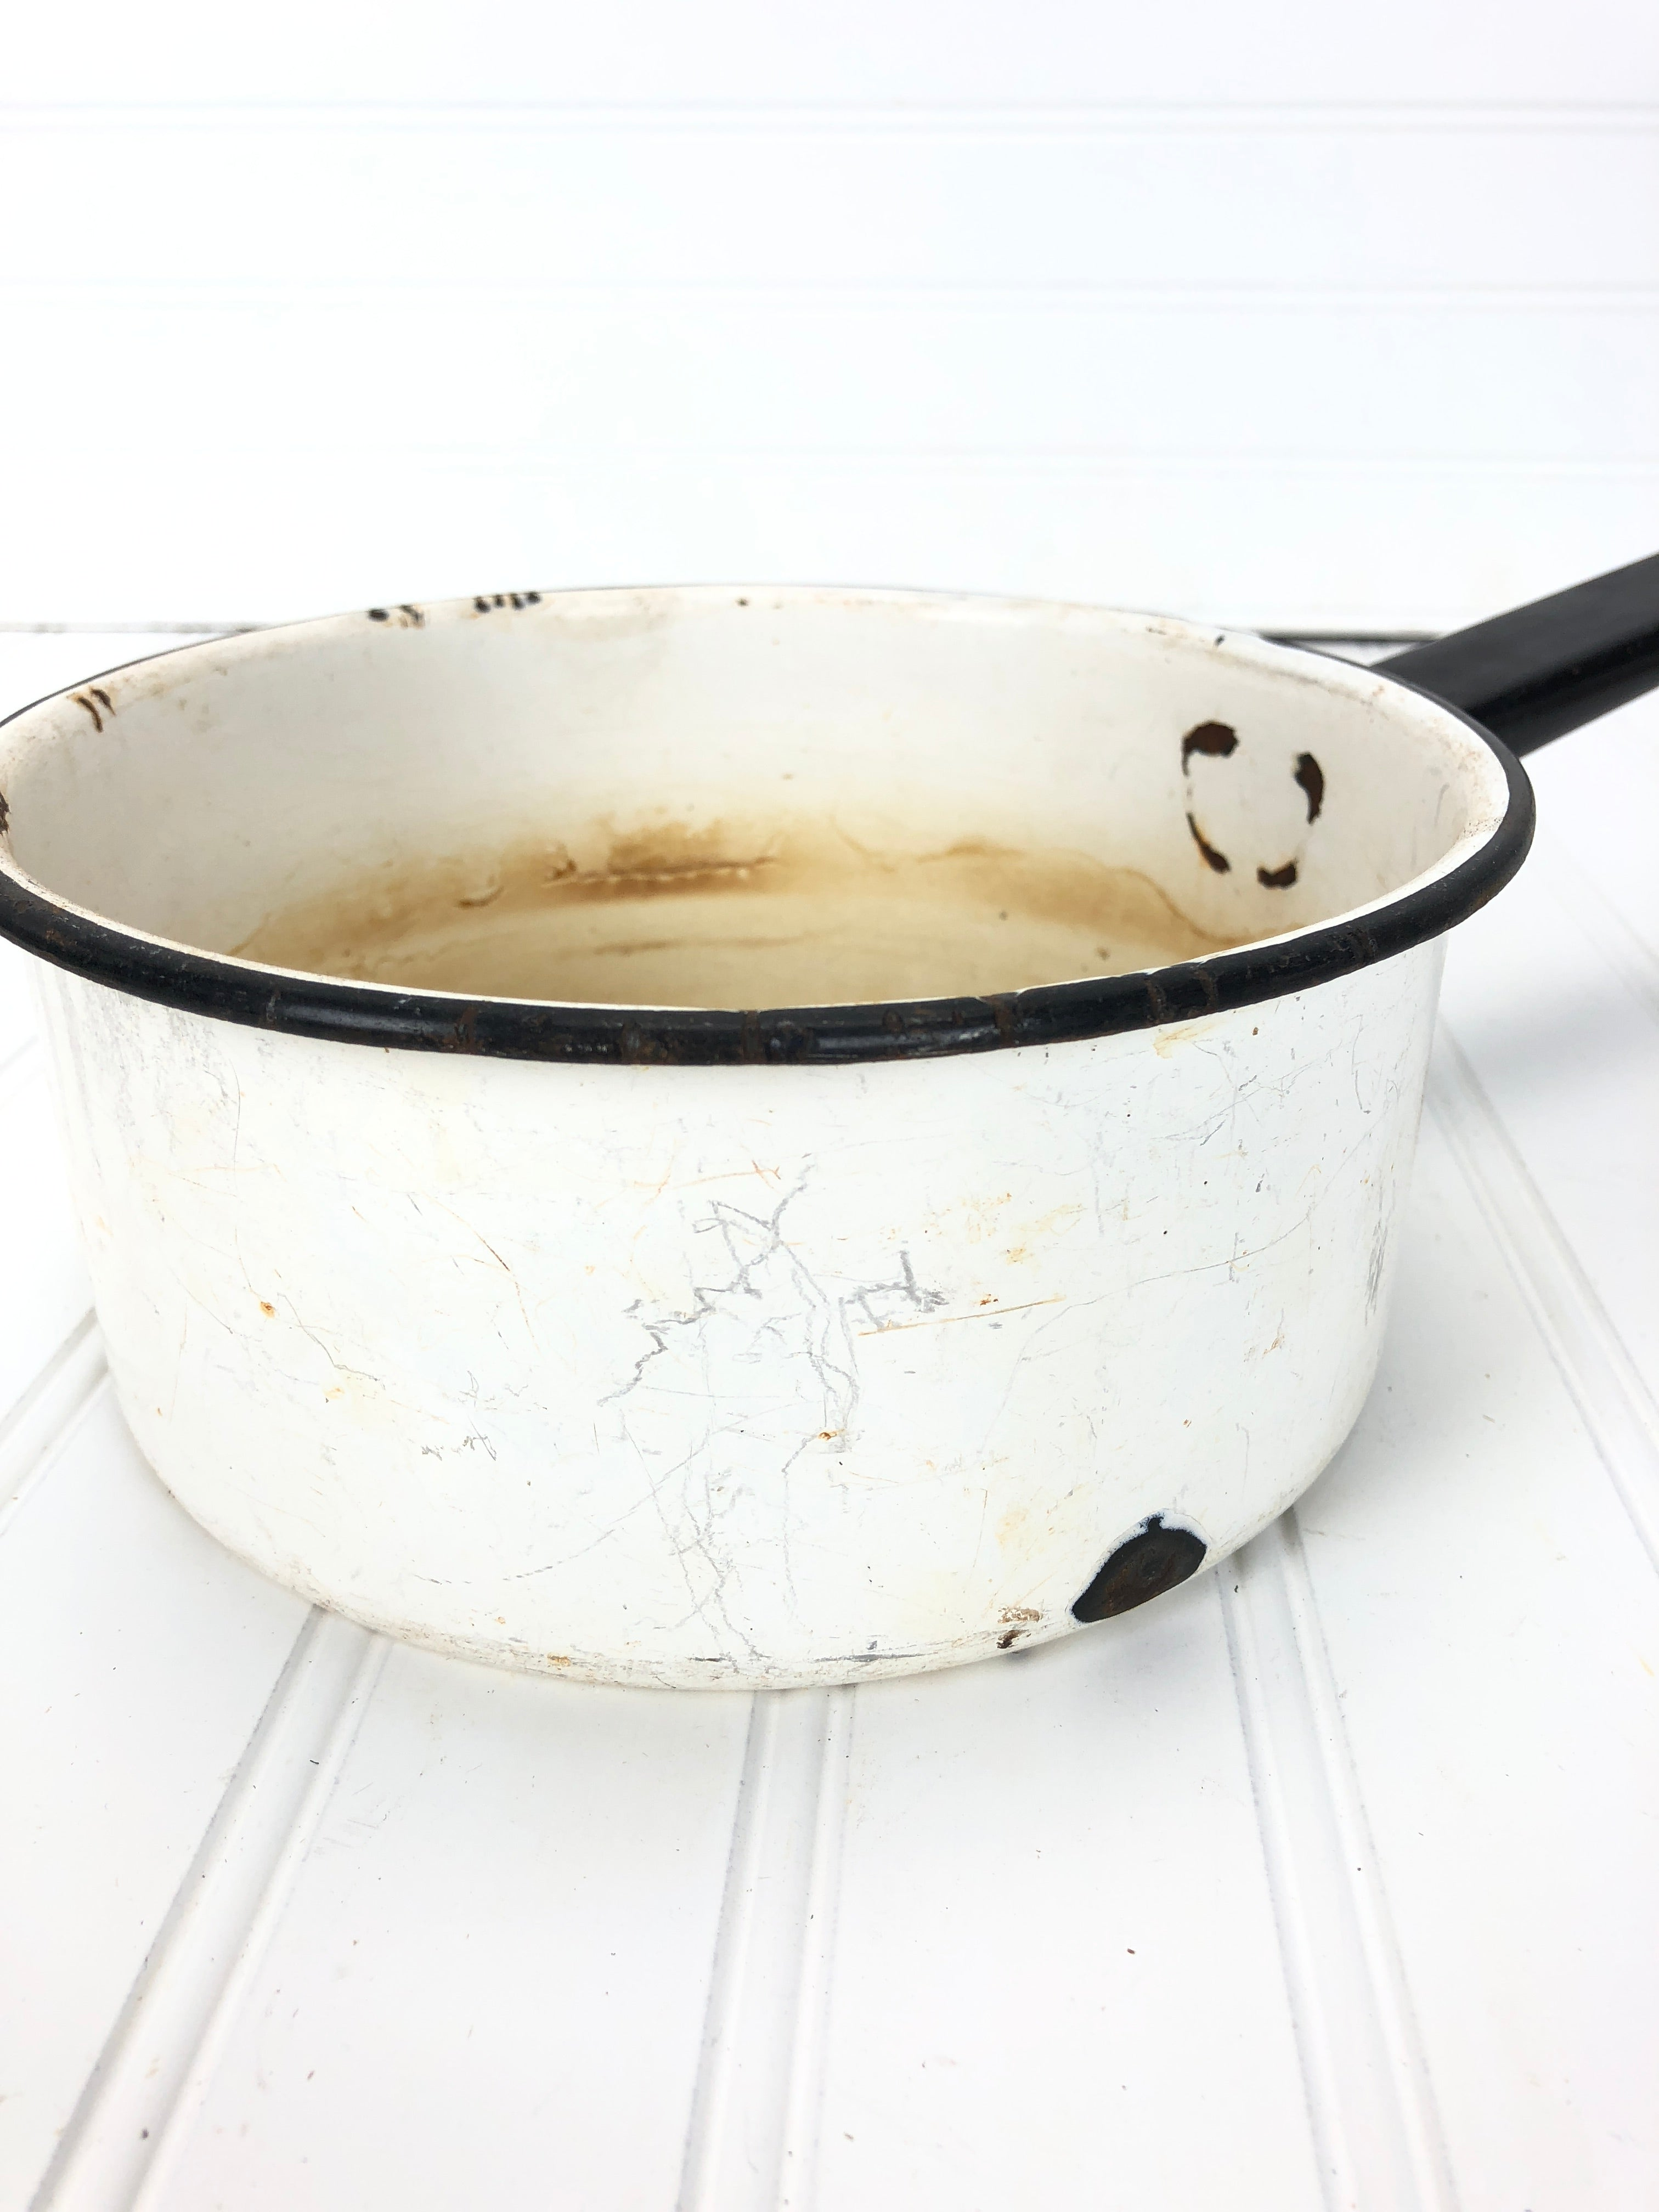 Black & White Enamel Pot #2